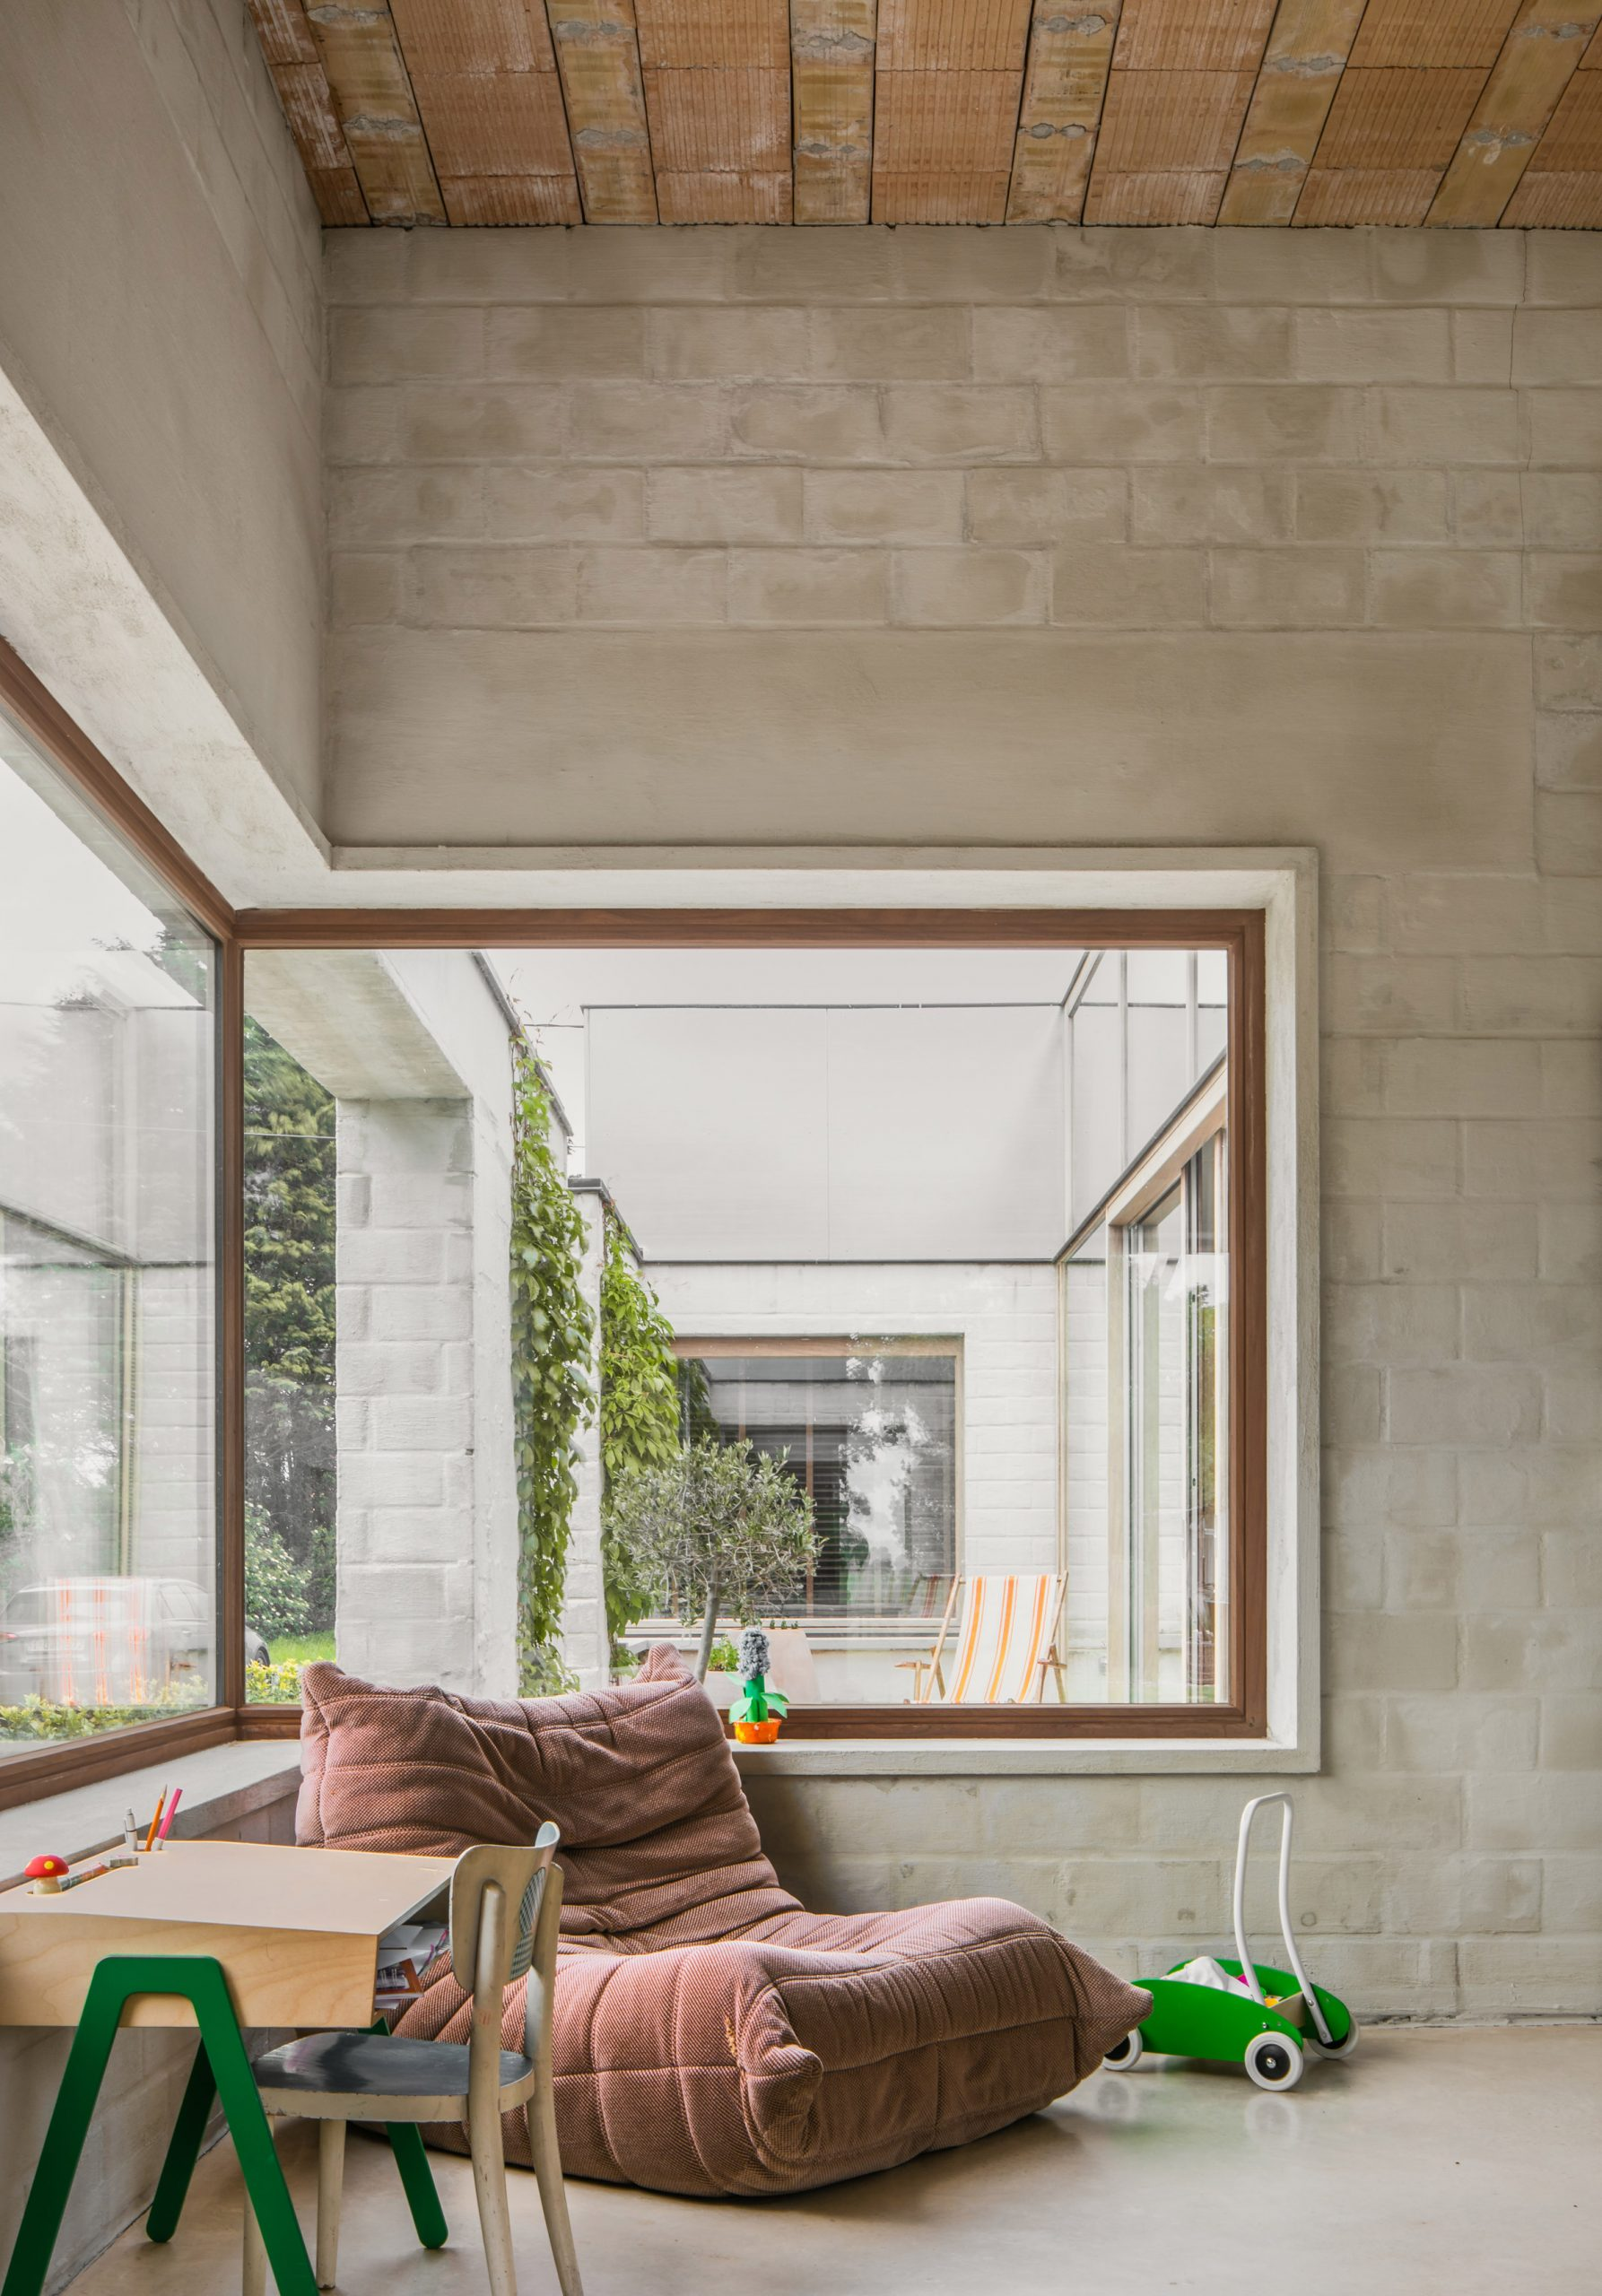 A living room with a corner window